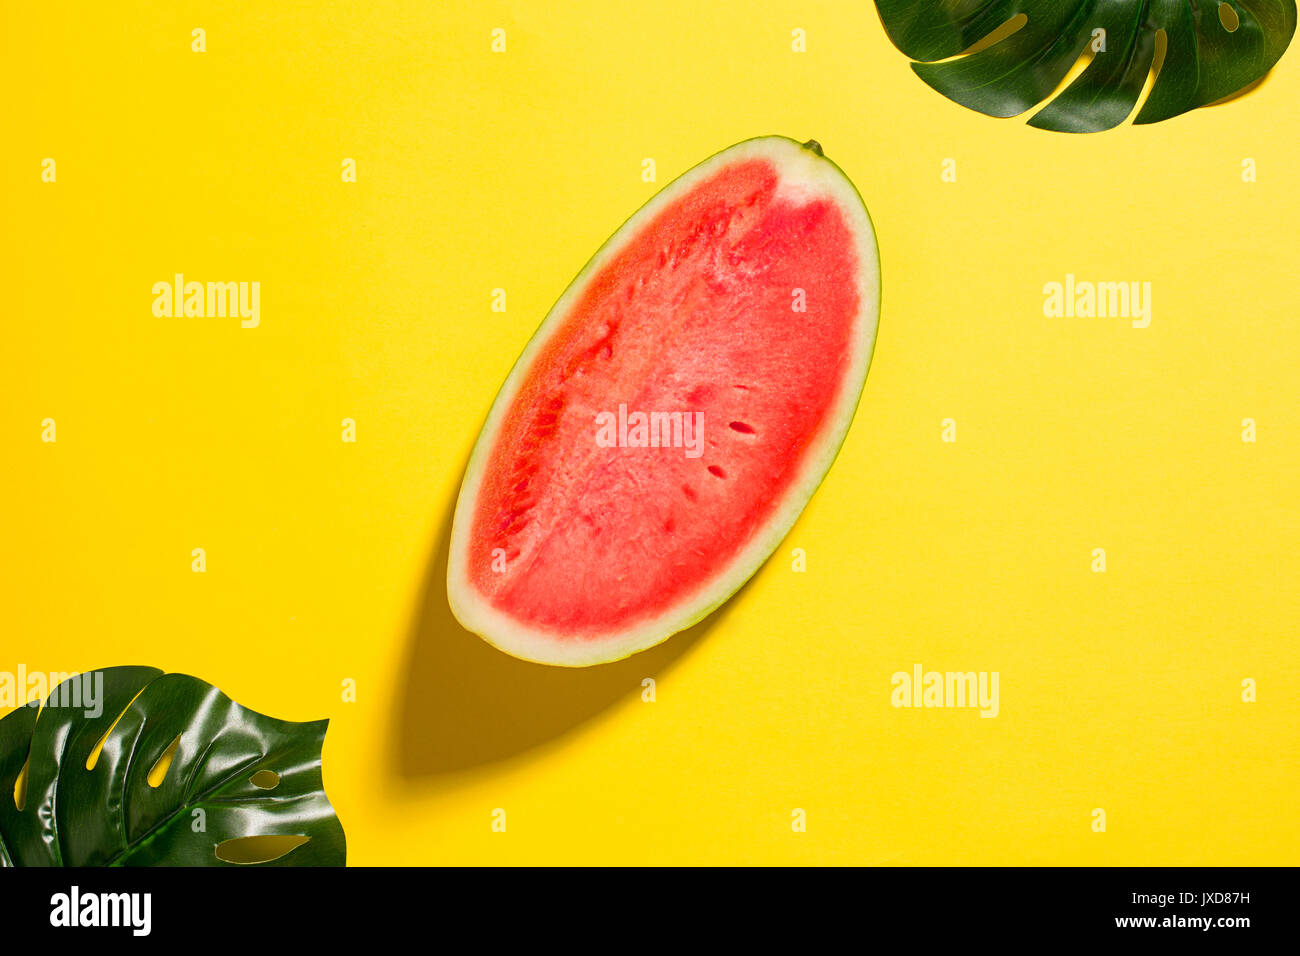 Watermelon on yellow background - Stock Image